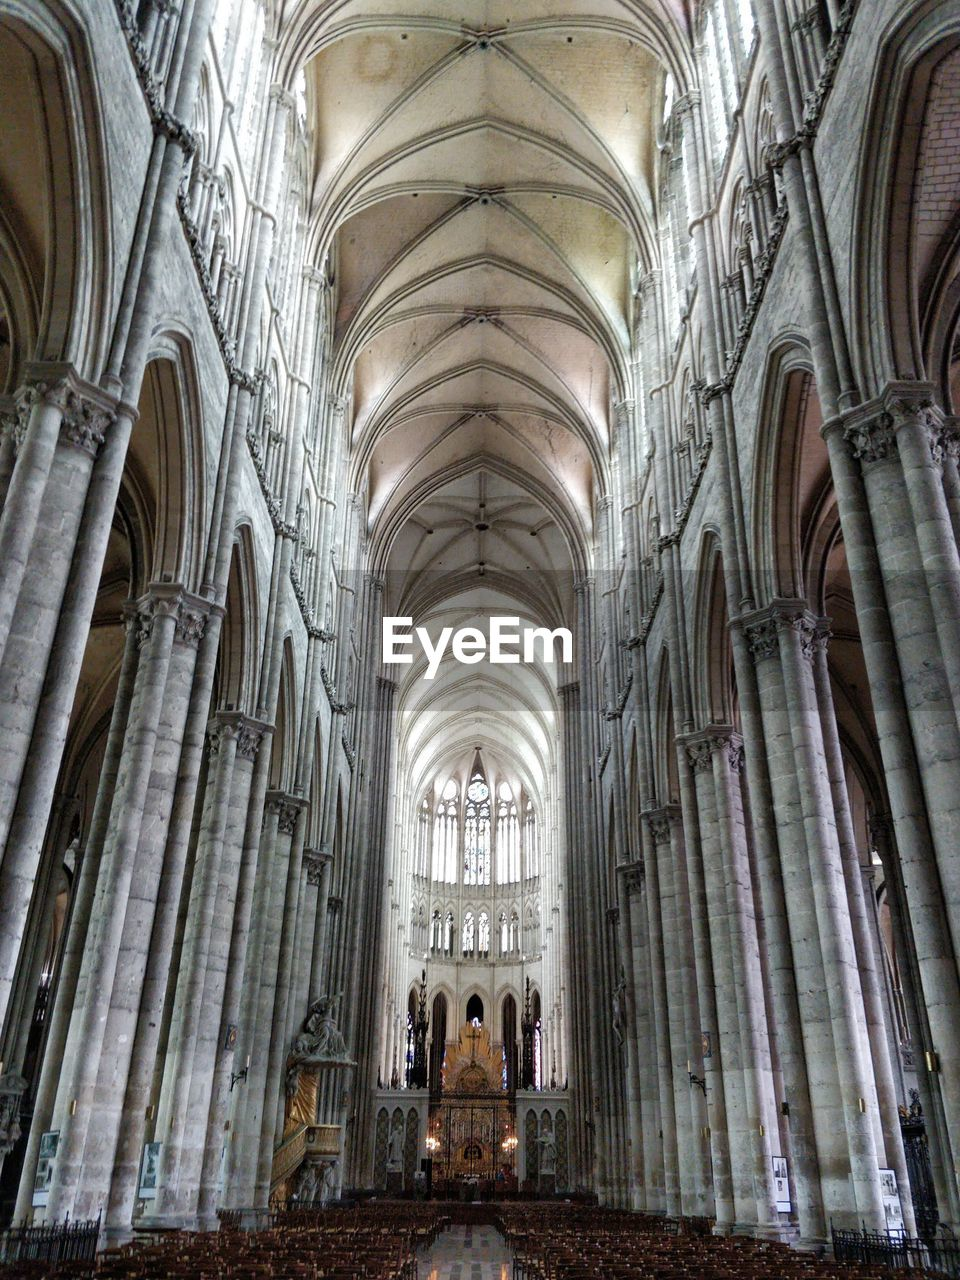 religion, belief, architecture, spirituality, built structure, place of worship, architectural column, building, indoors, arch, history, the past, travel destinations, incidental people, travel, ceiling, gothic style